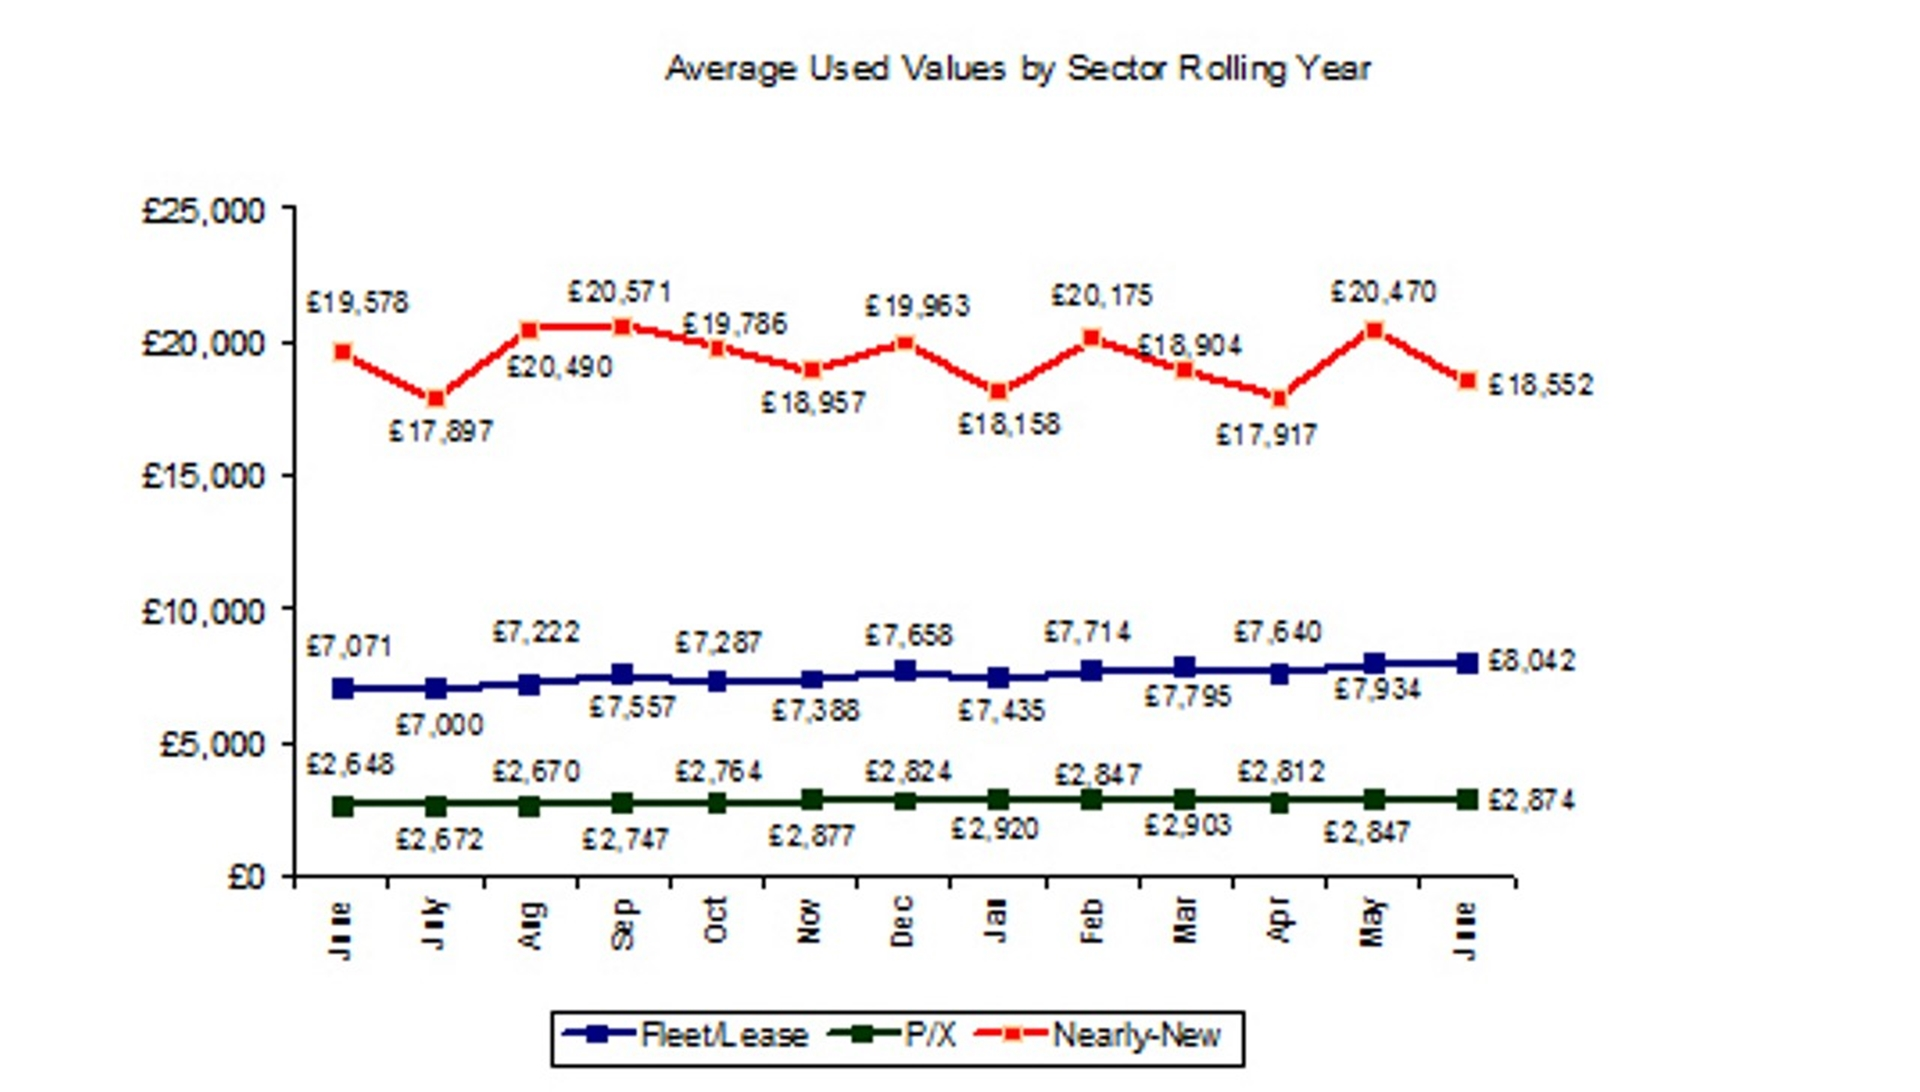 Average Used Car Values 2012